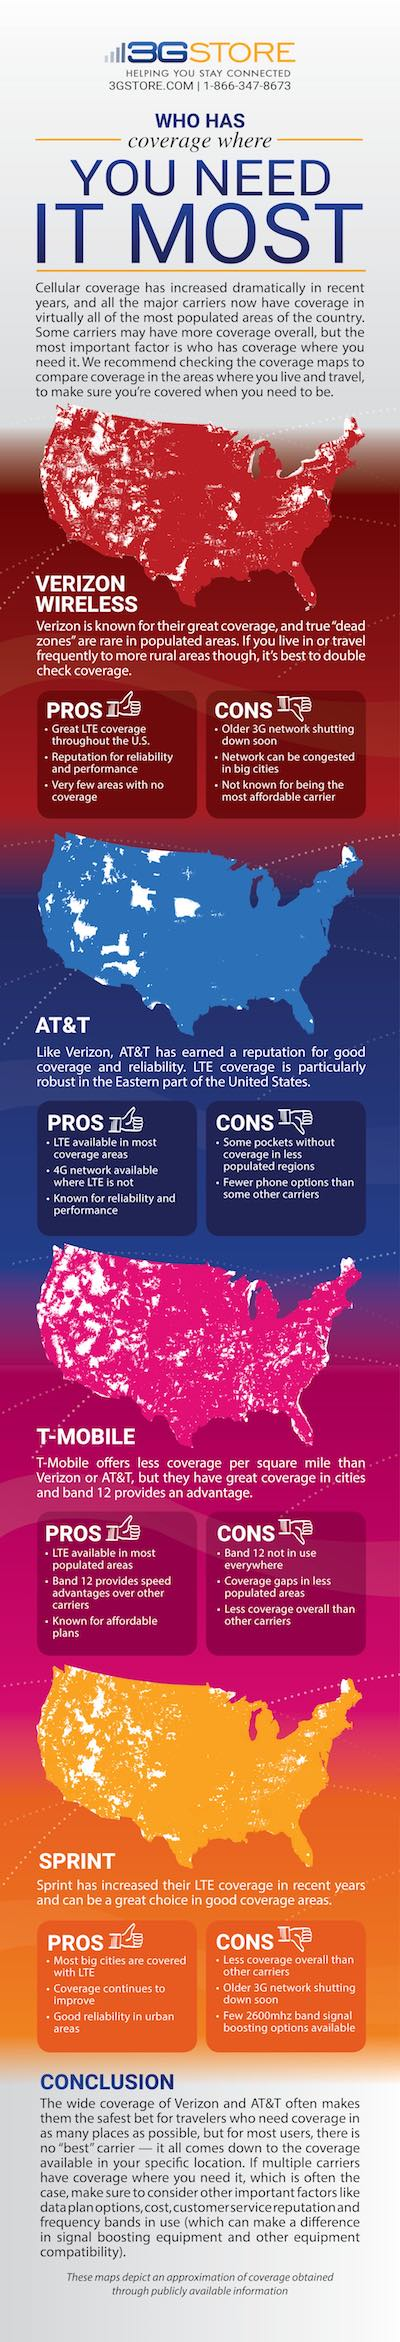 3G/4G Coverage Maps - Verizon, AT&T, T-Mobile and Sprint on verizon coverage map comparison, 4g data plans comparison, 4g service comparison, 4g lte comparison, wireless coverage maps comparison, cellular coverage map comparison, 4g lte map, 4g mobile wi-fi map,